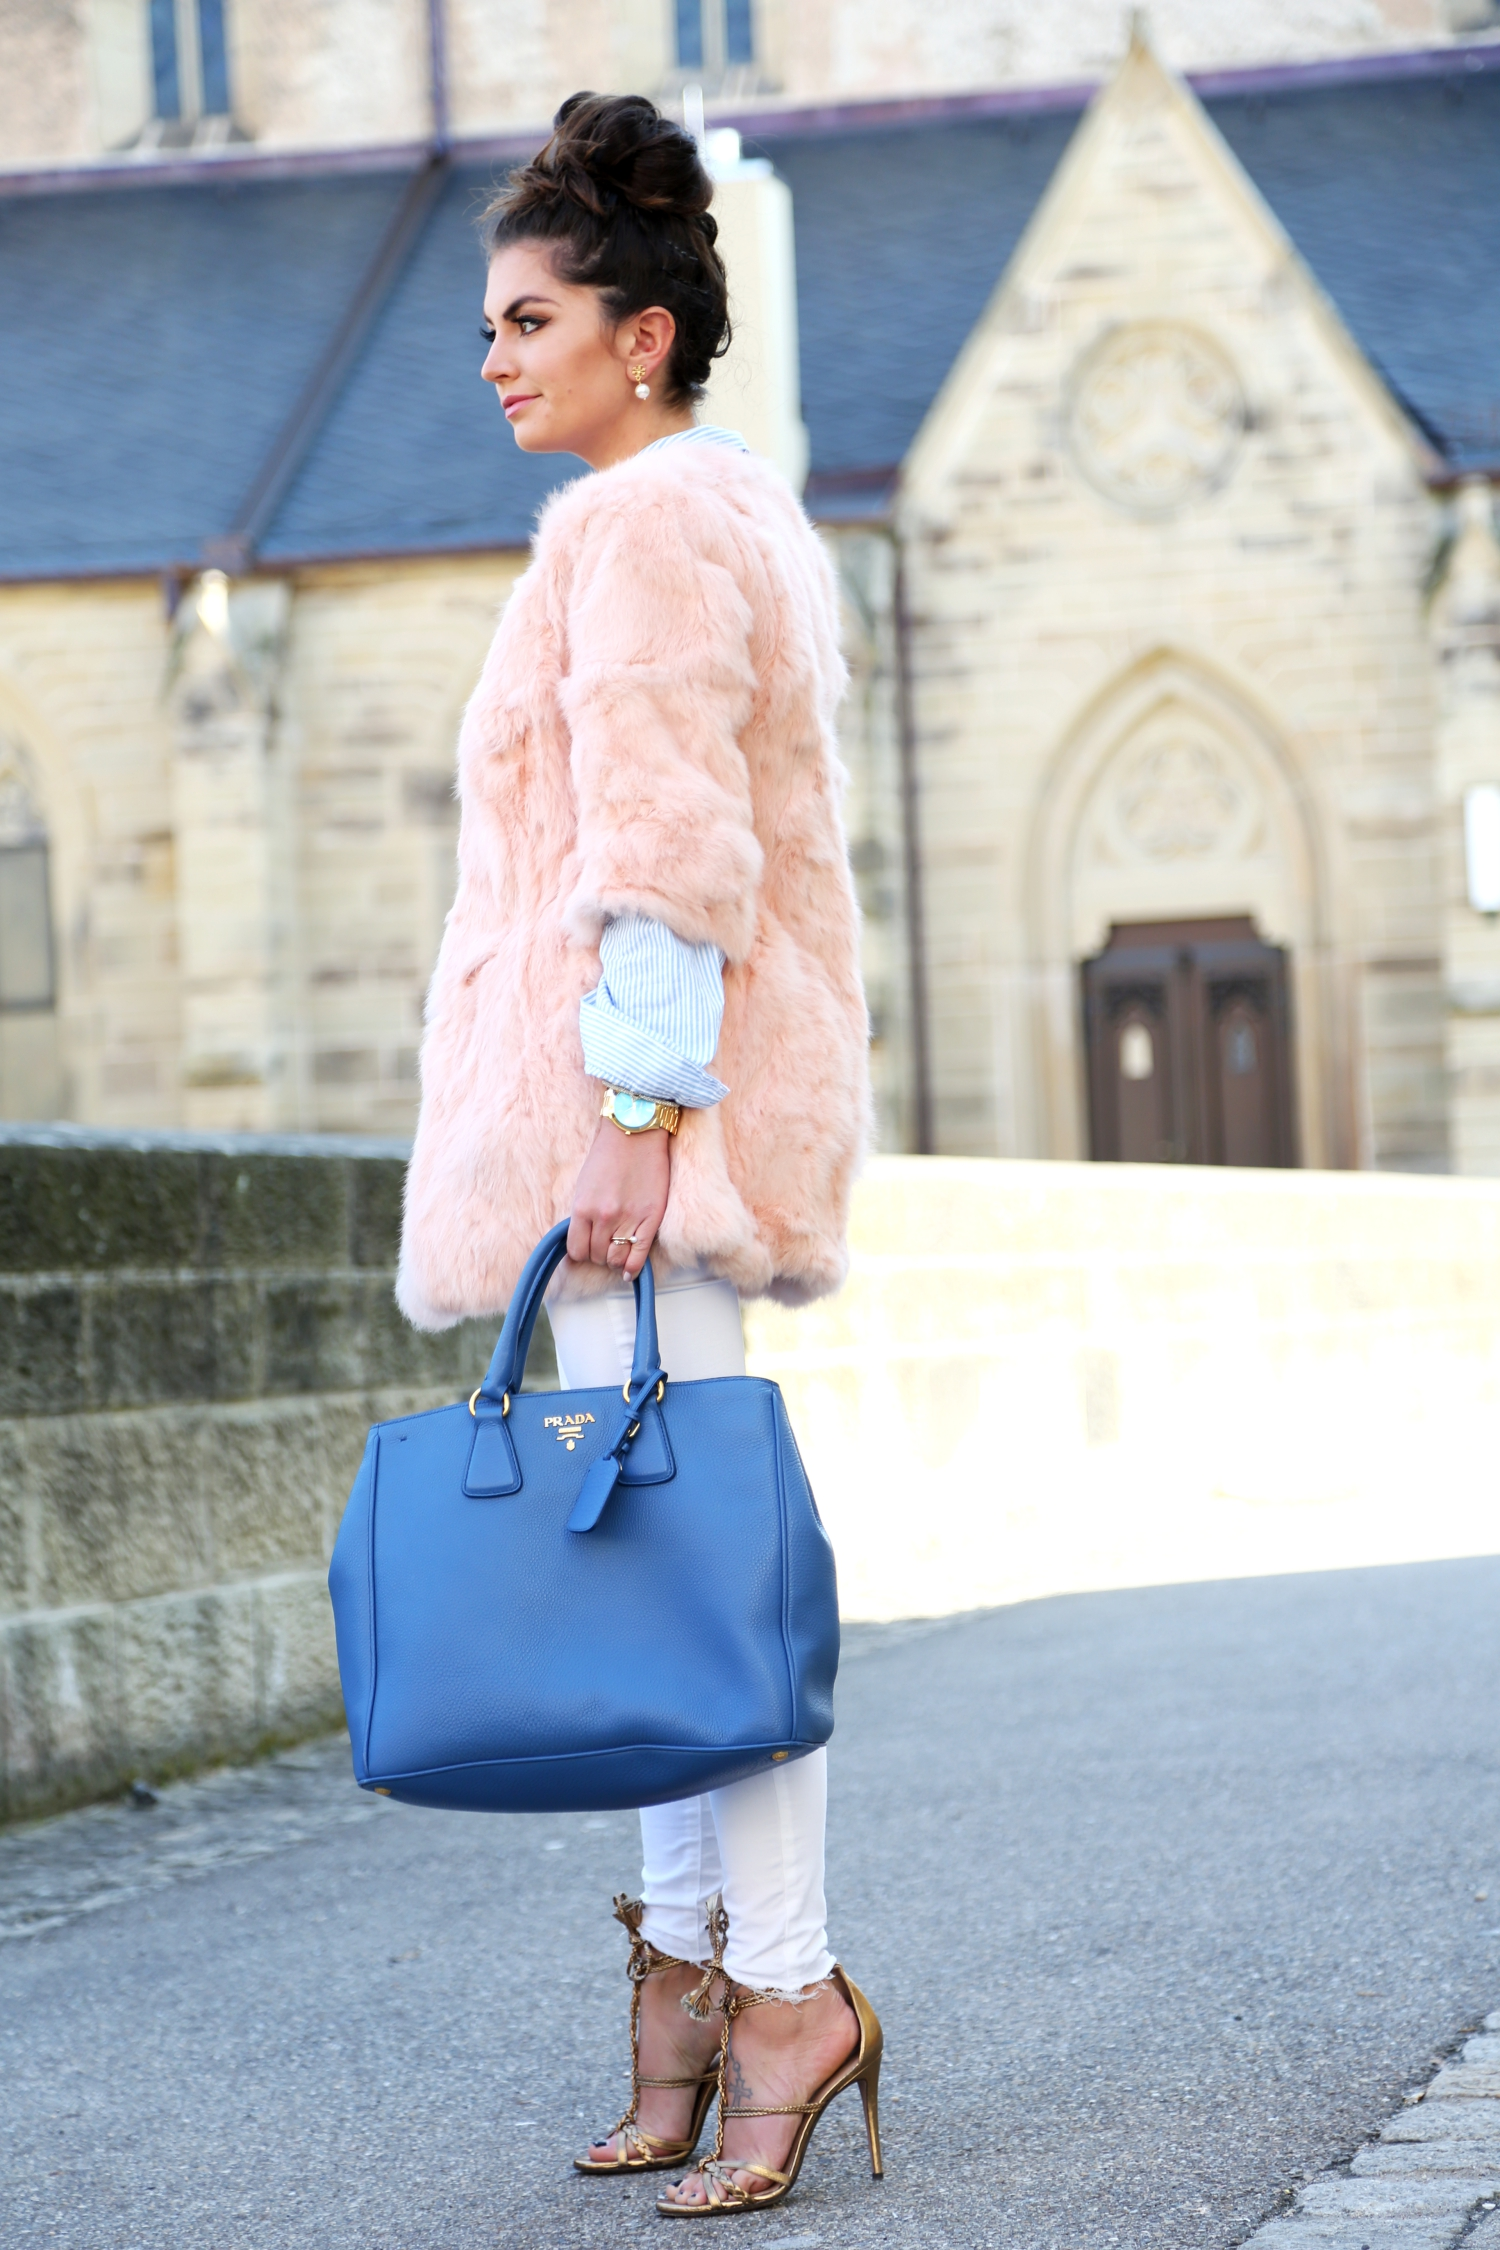 outfit-fashionhippieloves-german-fashionblogger-trend-spring-pastel-colors